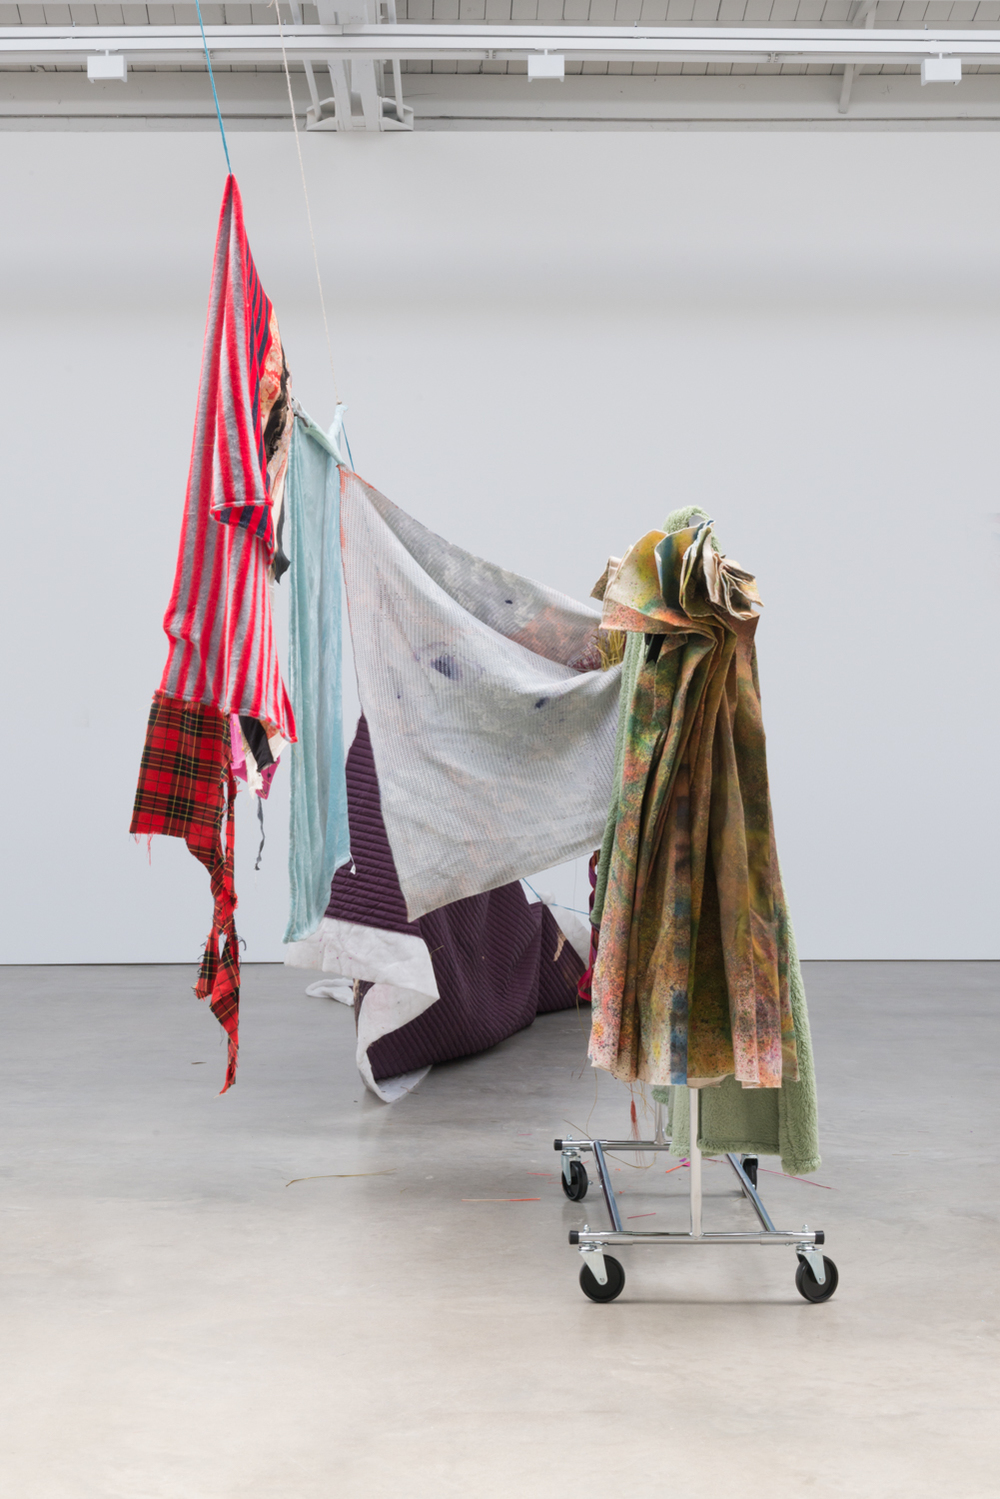 Eric Mack Come Live With Me Angel, alternate view 2016 Rope, straight pins, acrylic on plush microfiber blankets, polyester fabrics, dye, bleached silk, decorative bouquet, and aluminum clothing rack 94 x 300 x 52 in (238.76h x 762w x 132.08d cm) ENM002